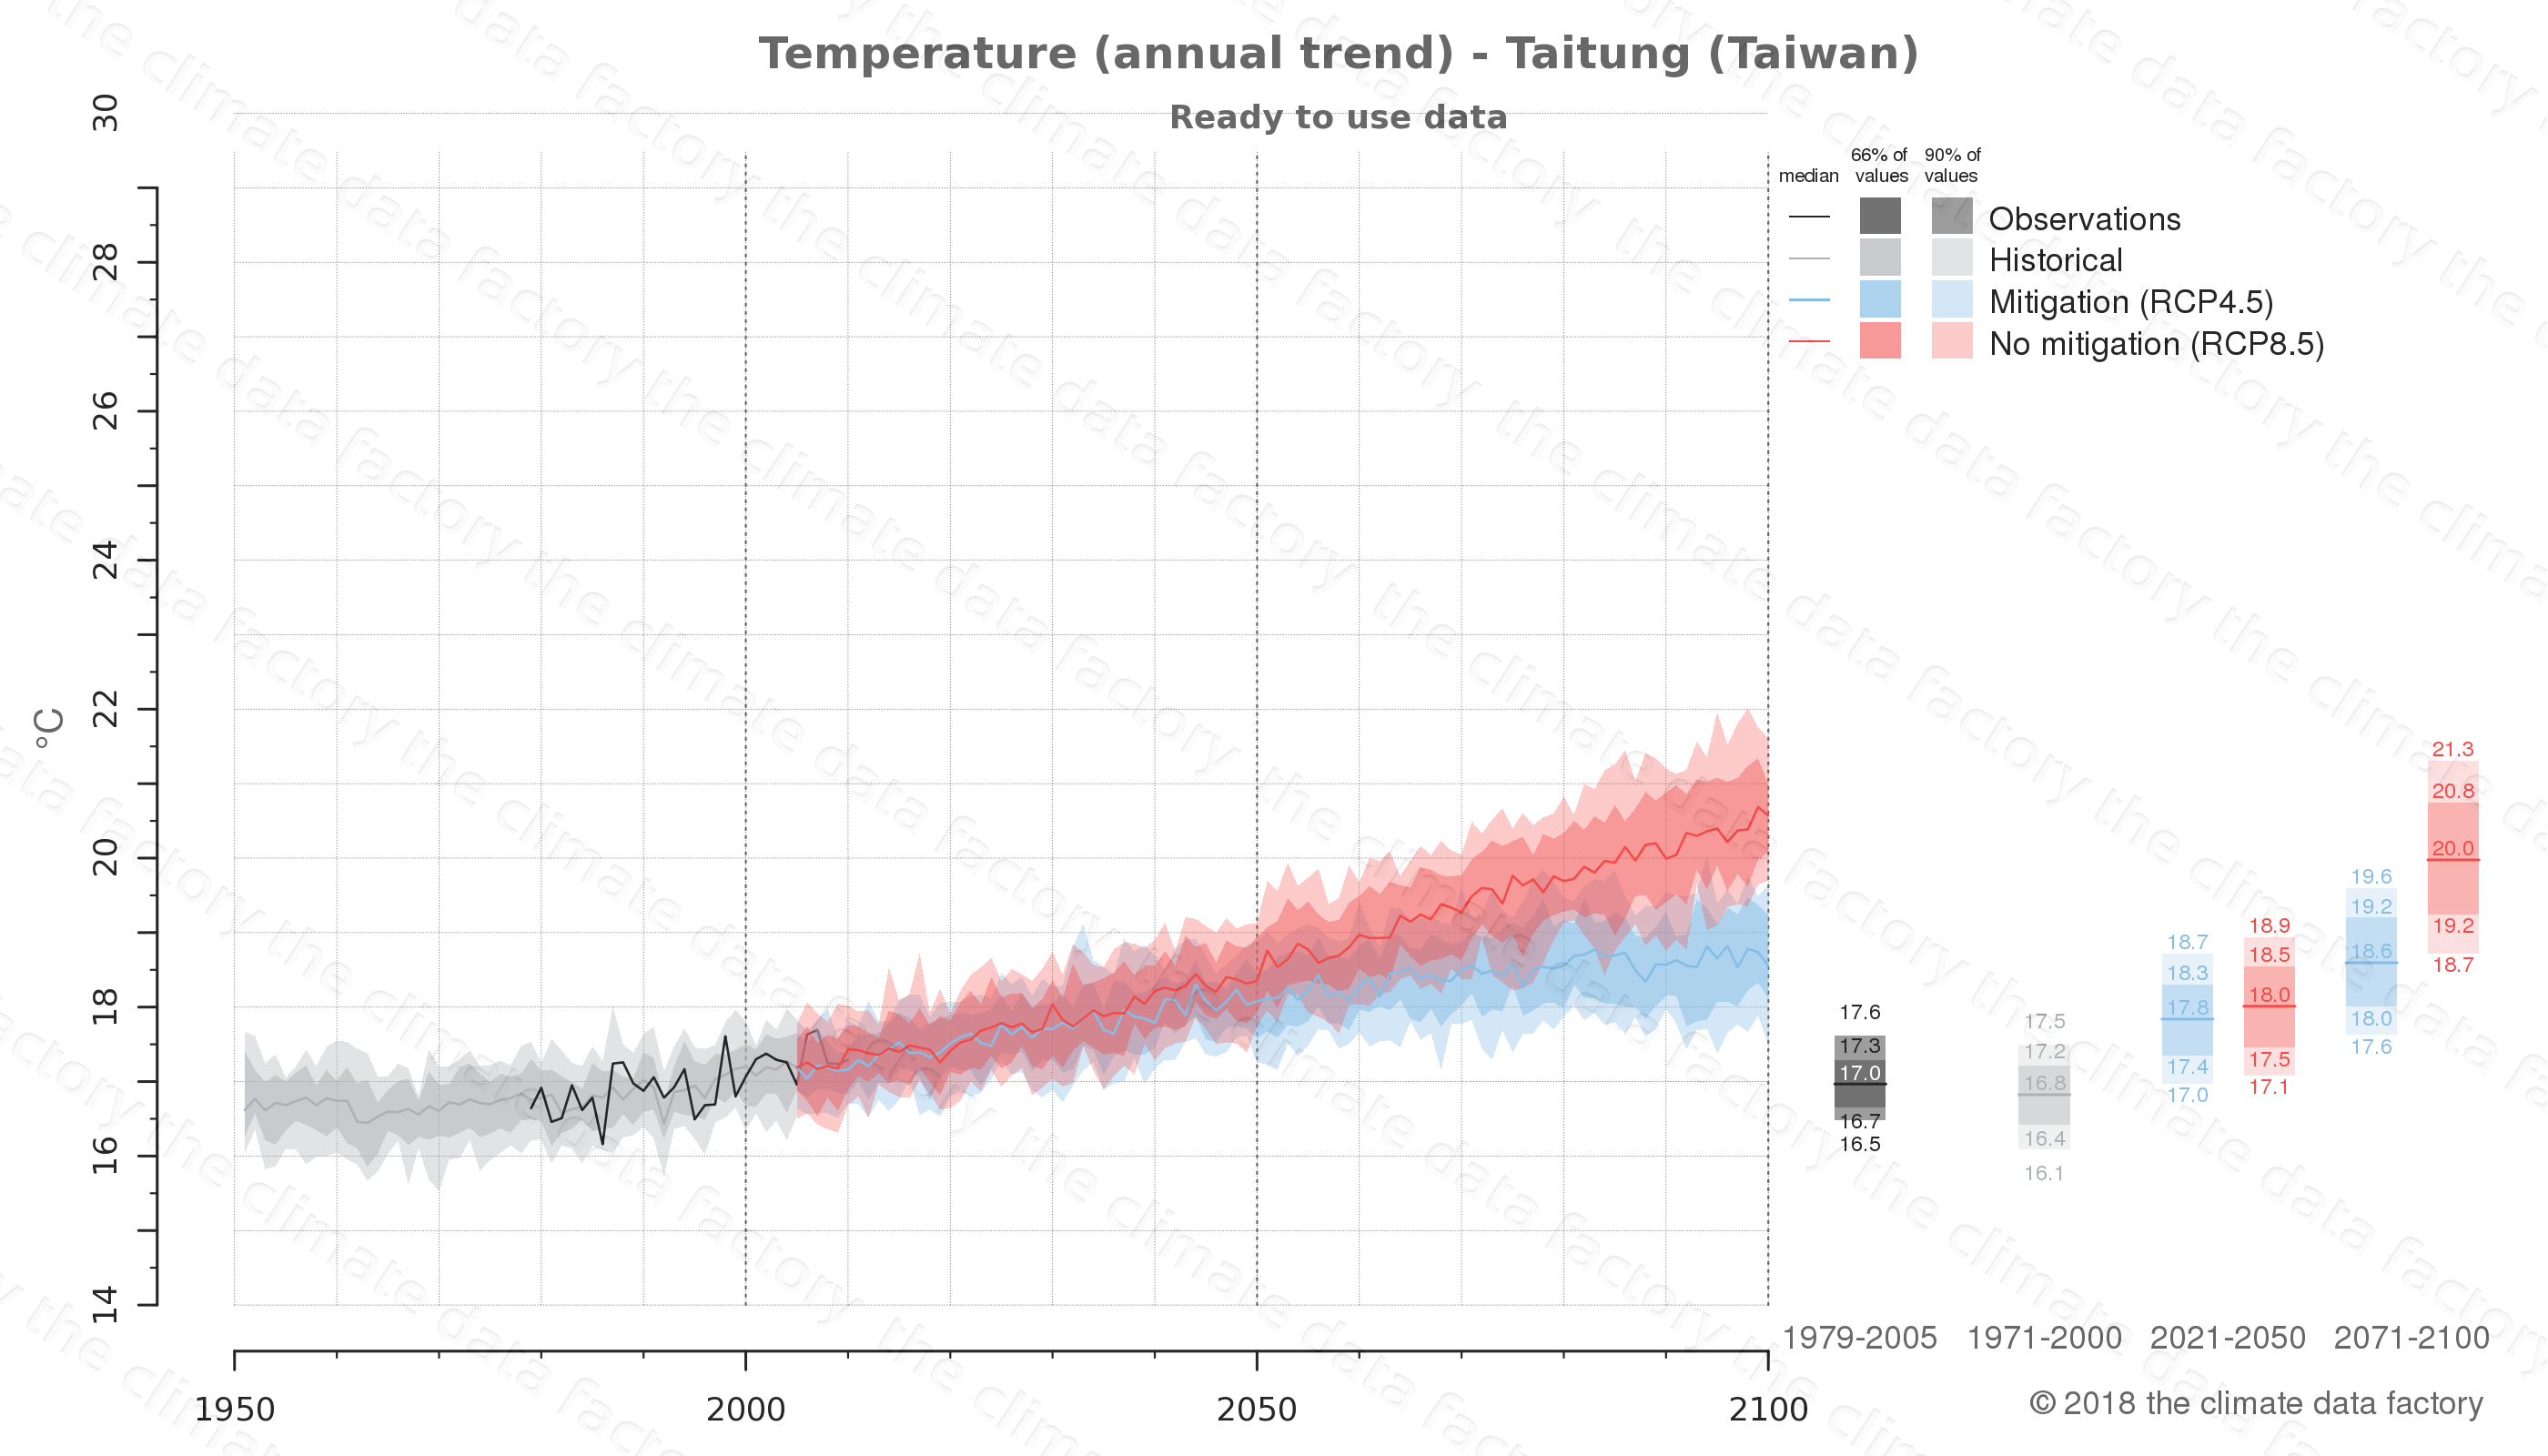 climate change data policy adaptation climate graph city data temperature taitung taiwan